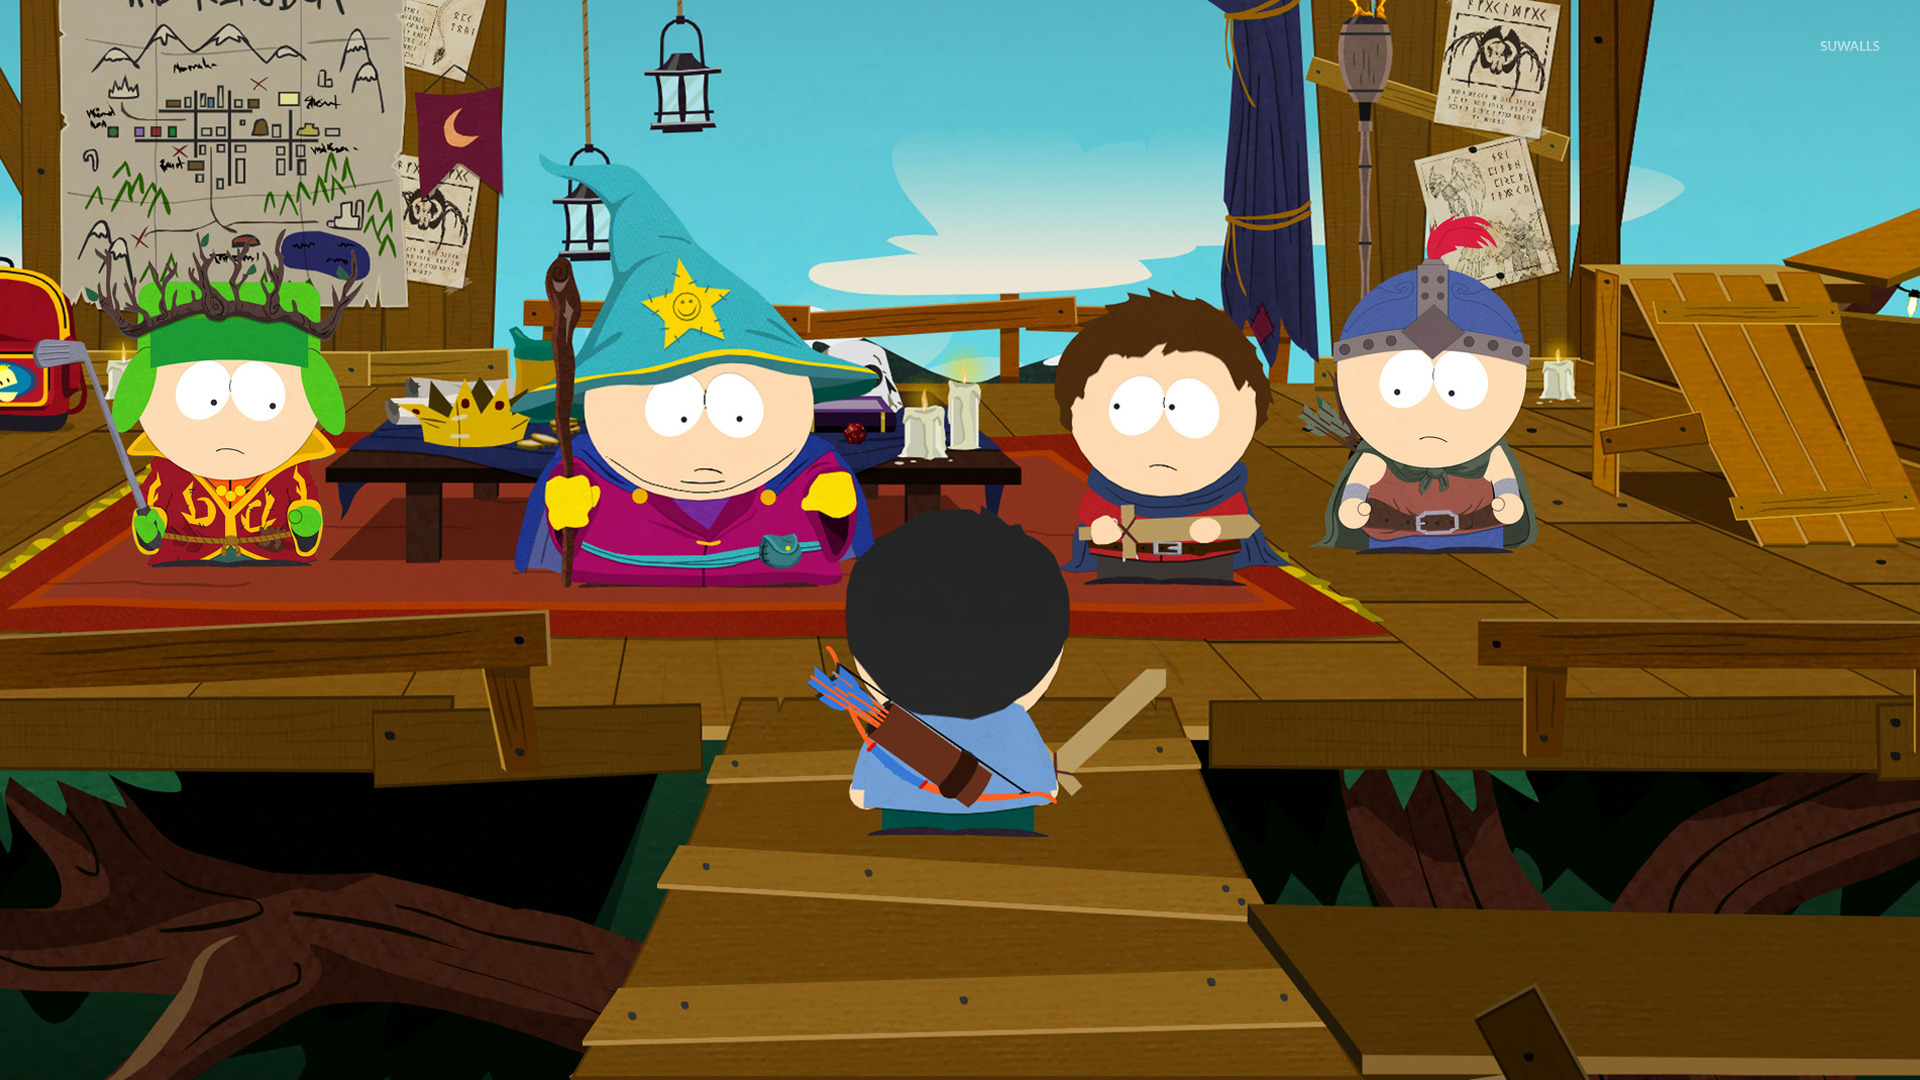 south park the stick of truth 5 wallpaper game